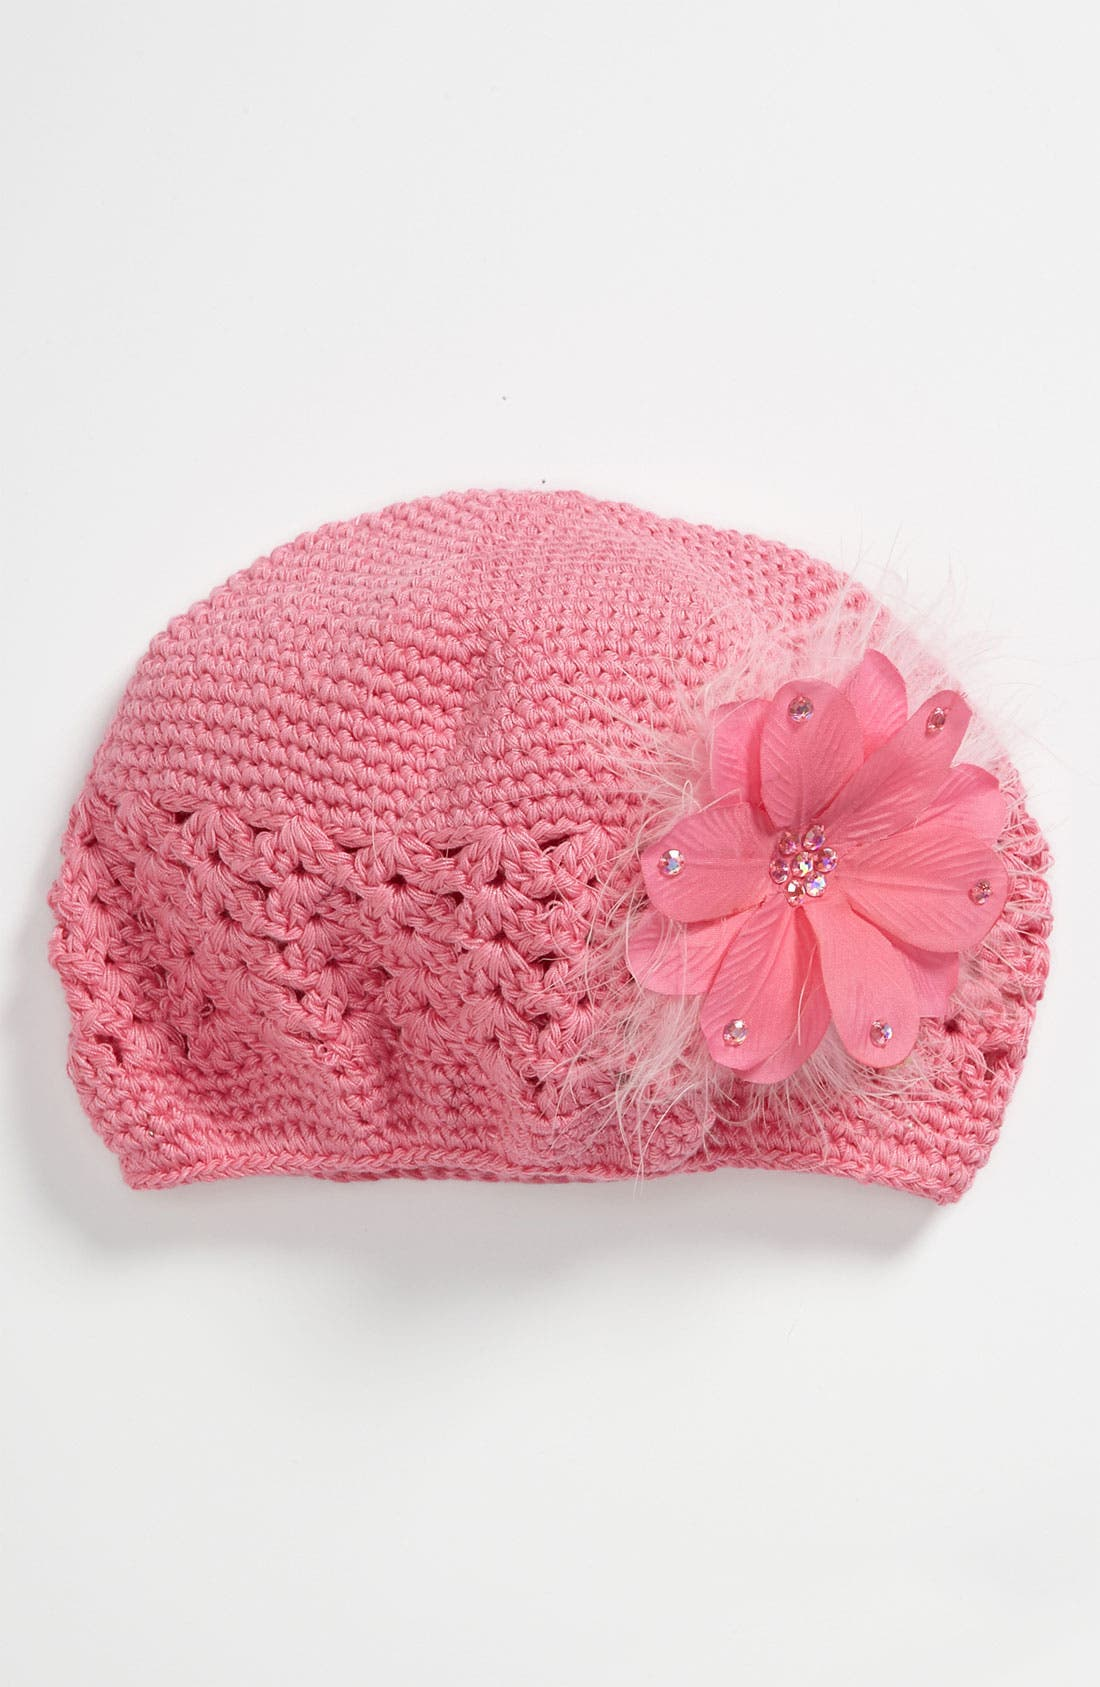 Alternate Image 1 Selected - PLH Bows & Laces Crochet Hat (Toddler)